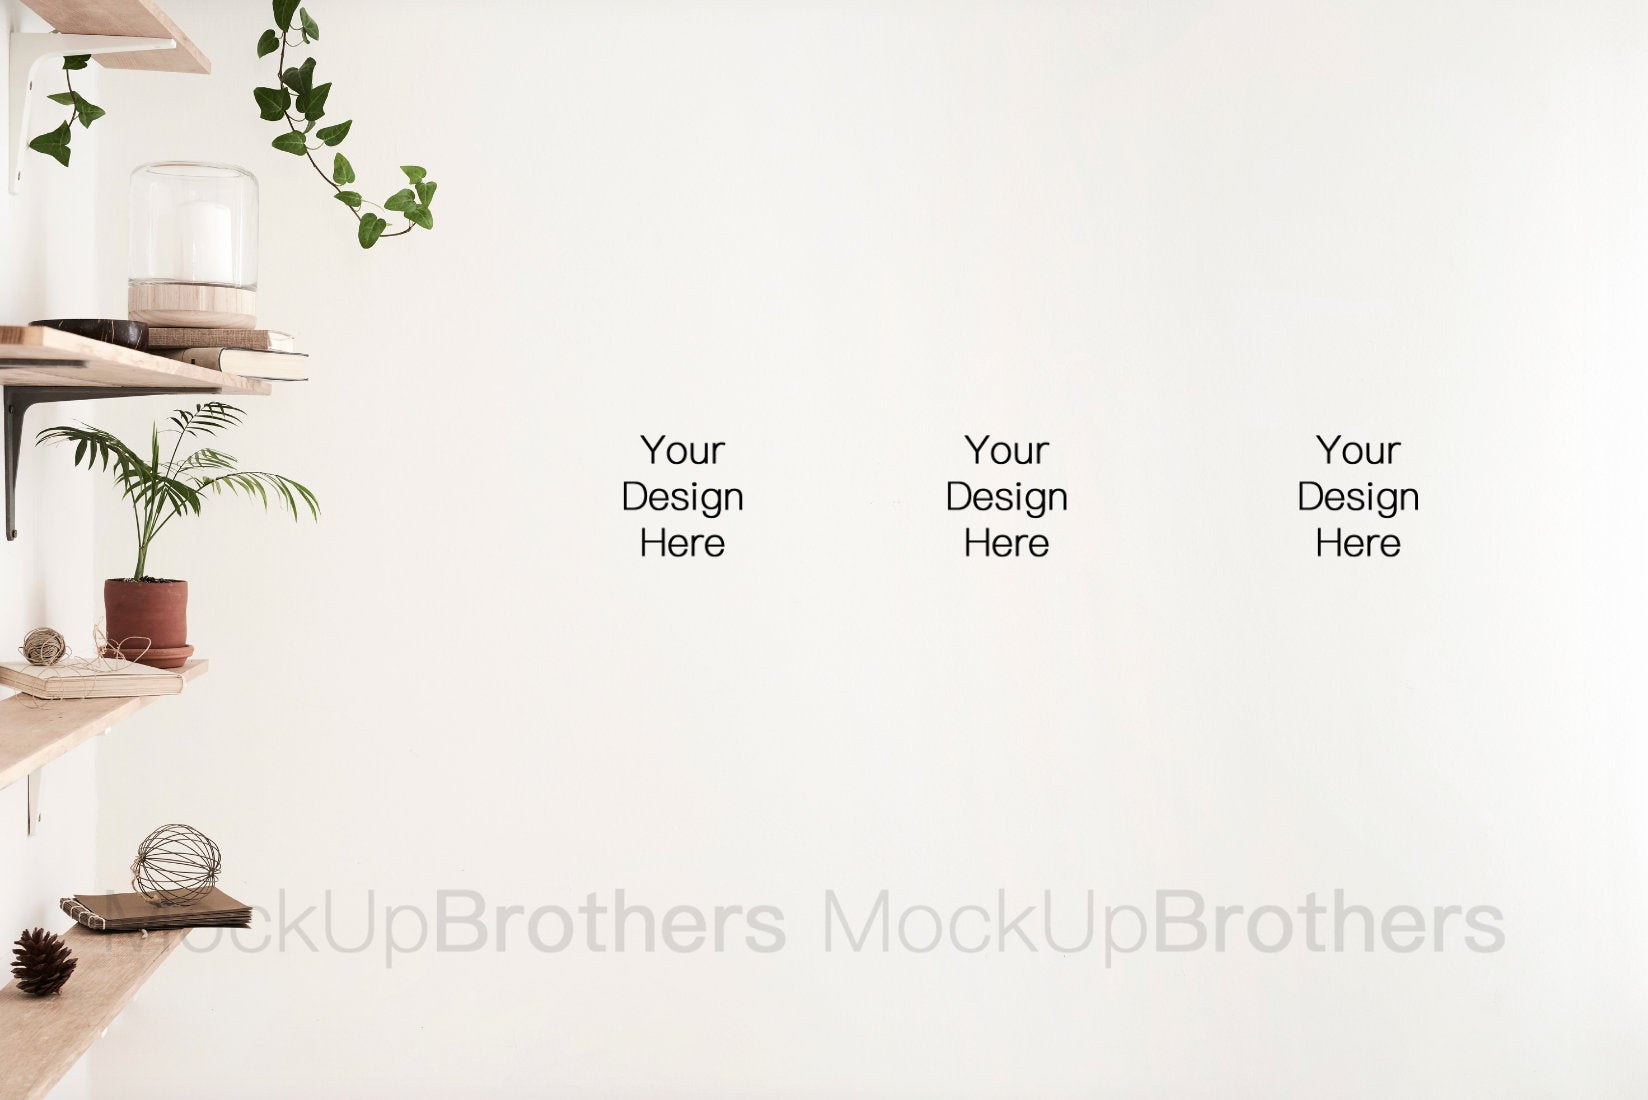 Botanical wall mockup from Mocuk Brothers